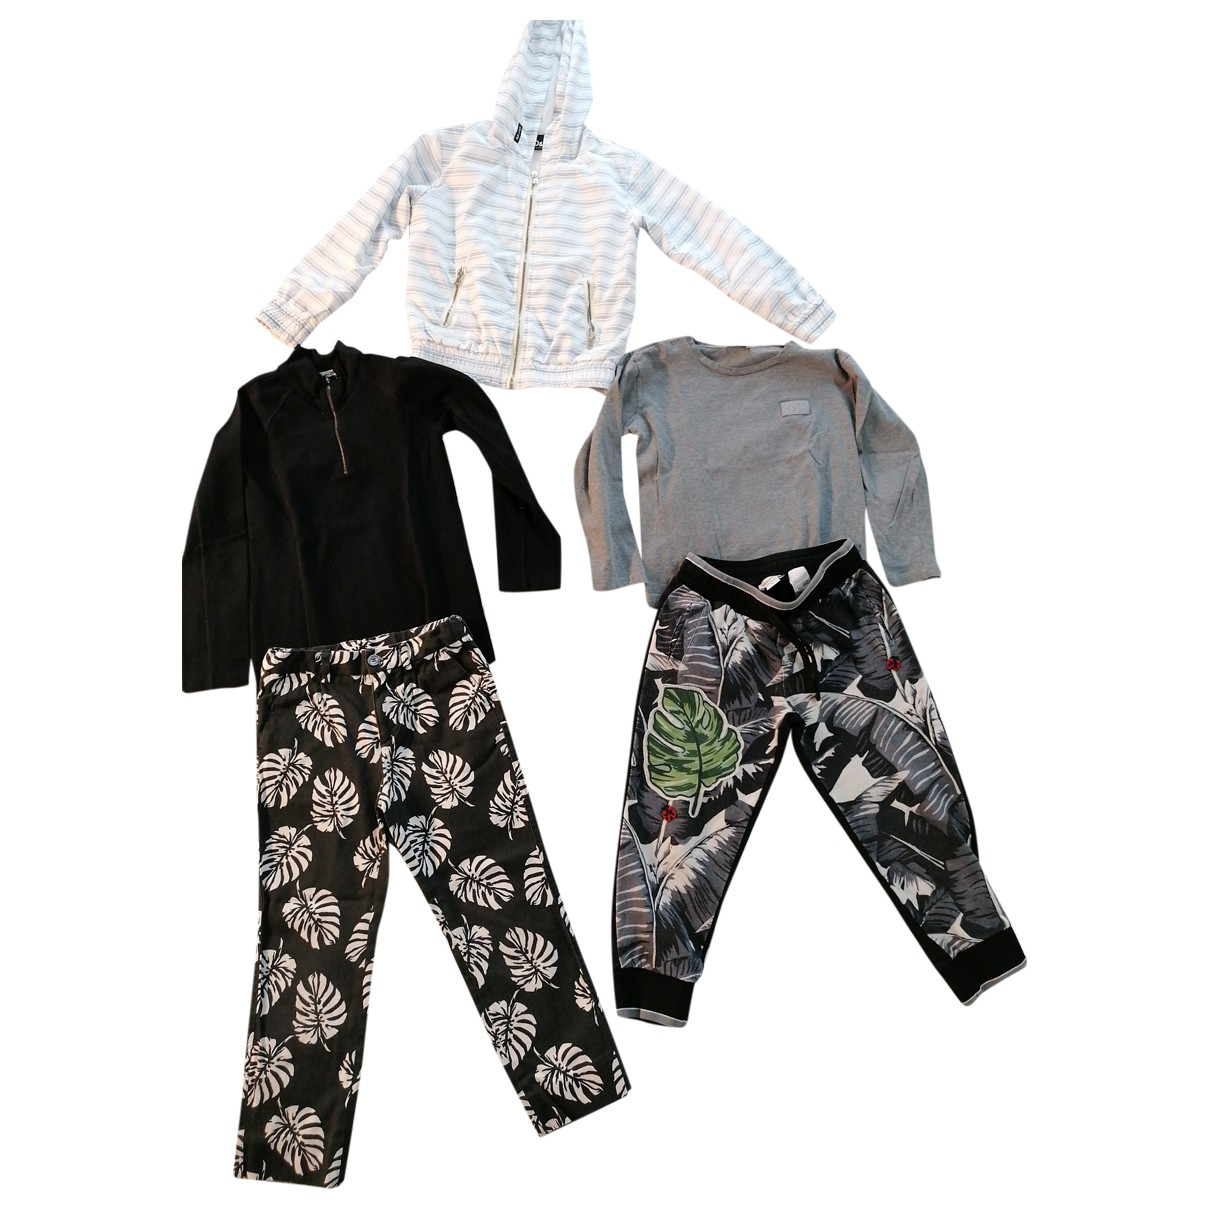 Dolce & Gabbana N Cotton Outfits for Kids 5 years - up to 108cm FR